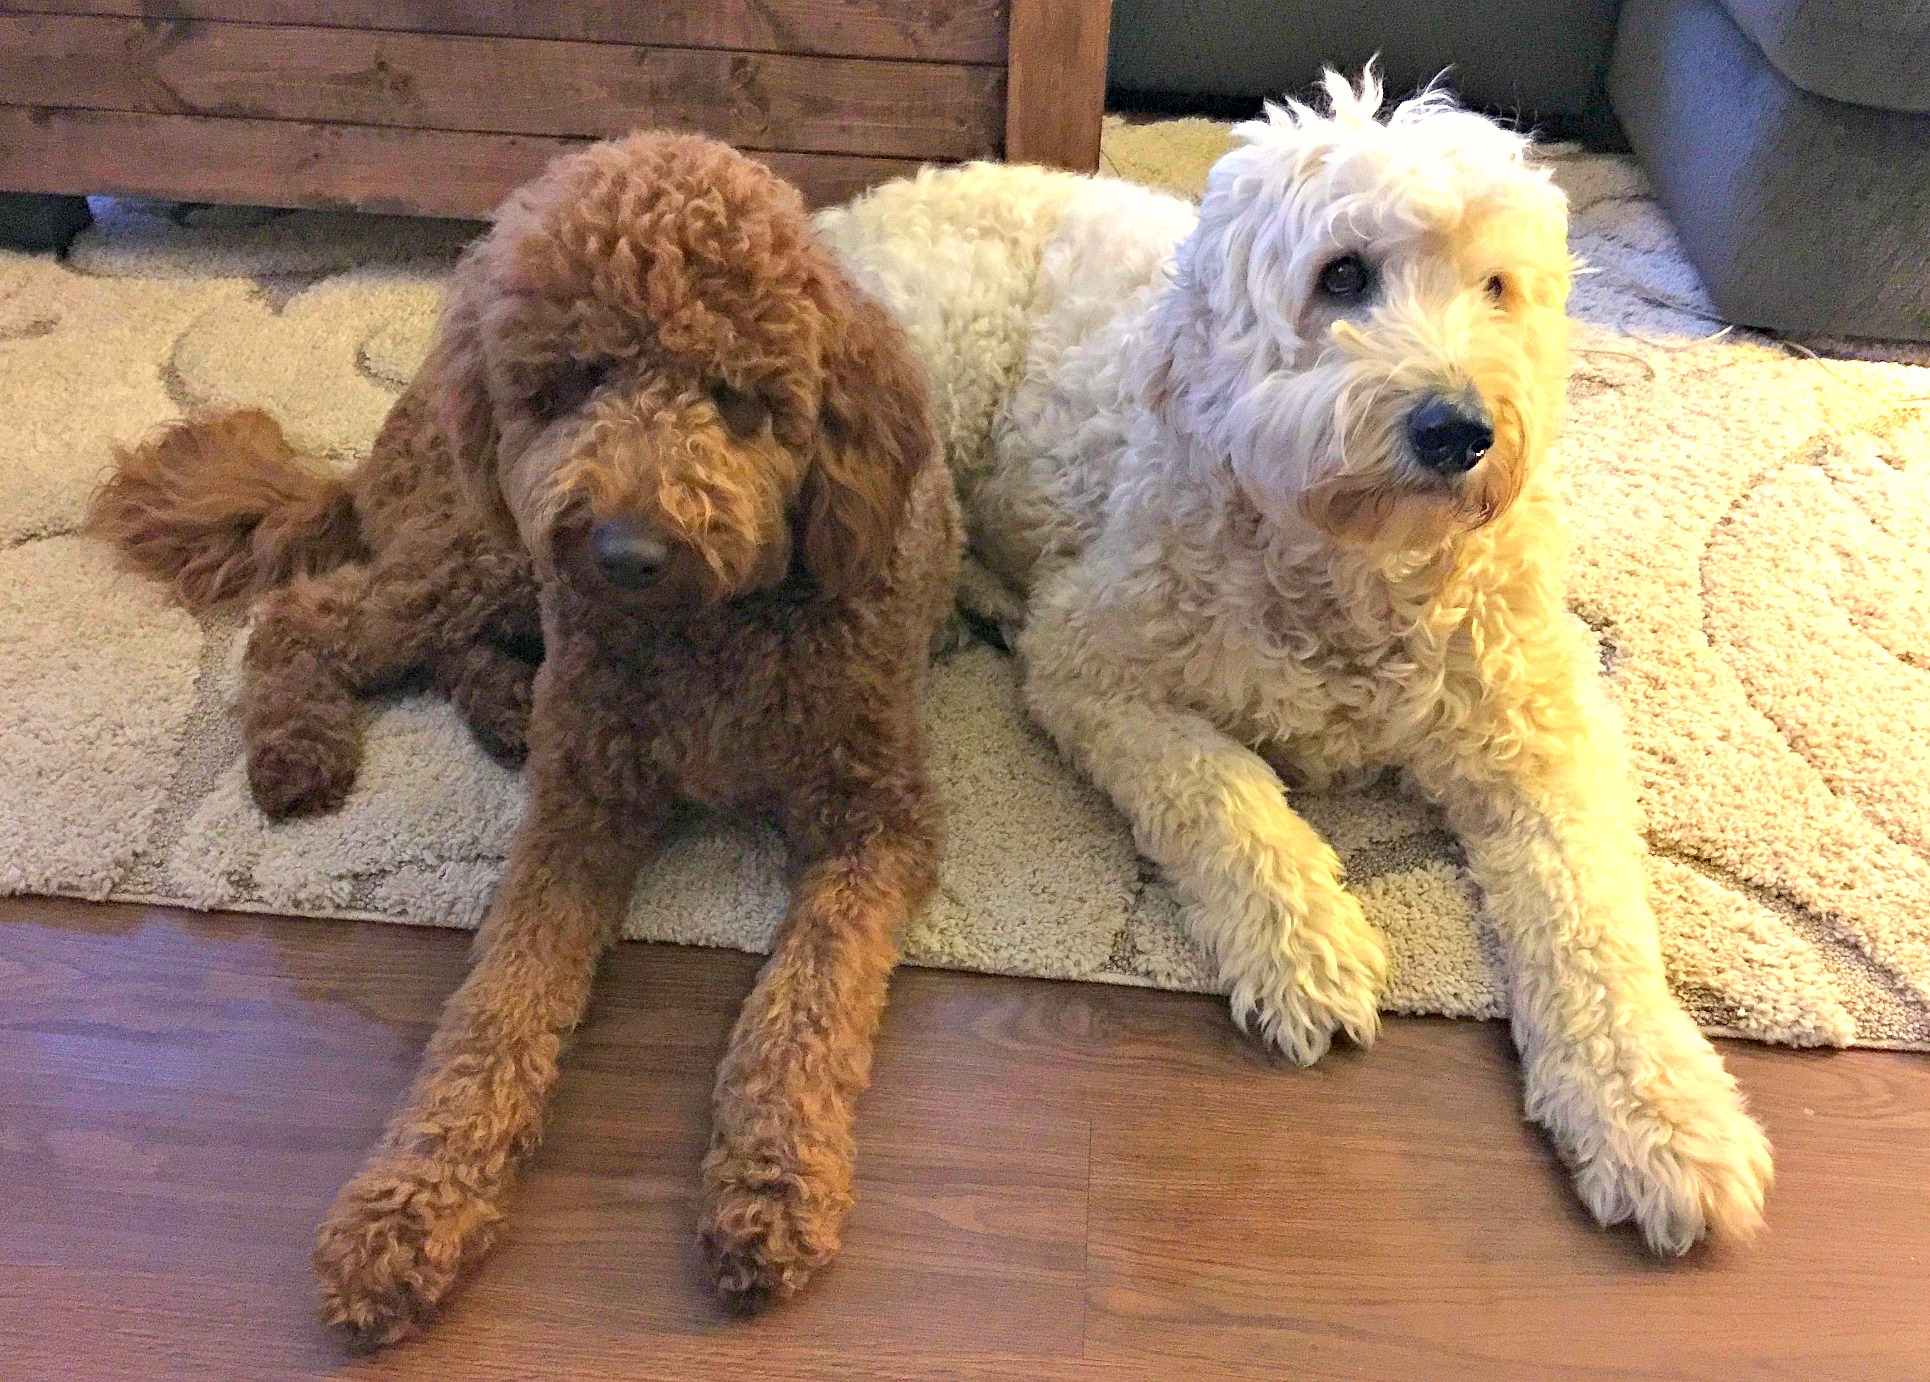 Kona and Grumples Goldendoodles